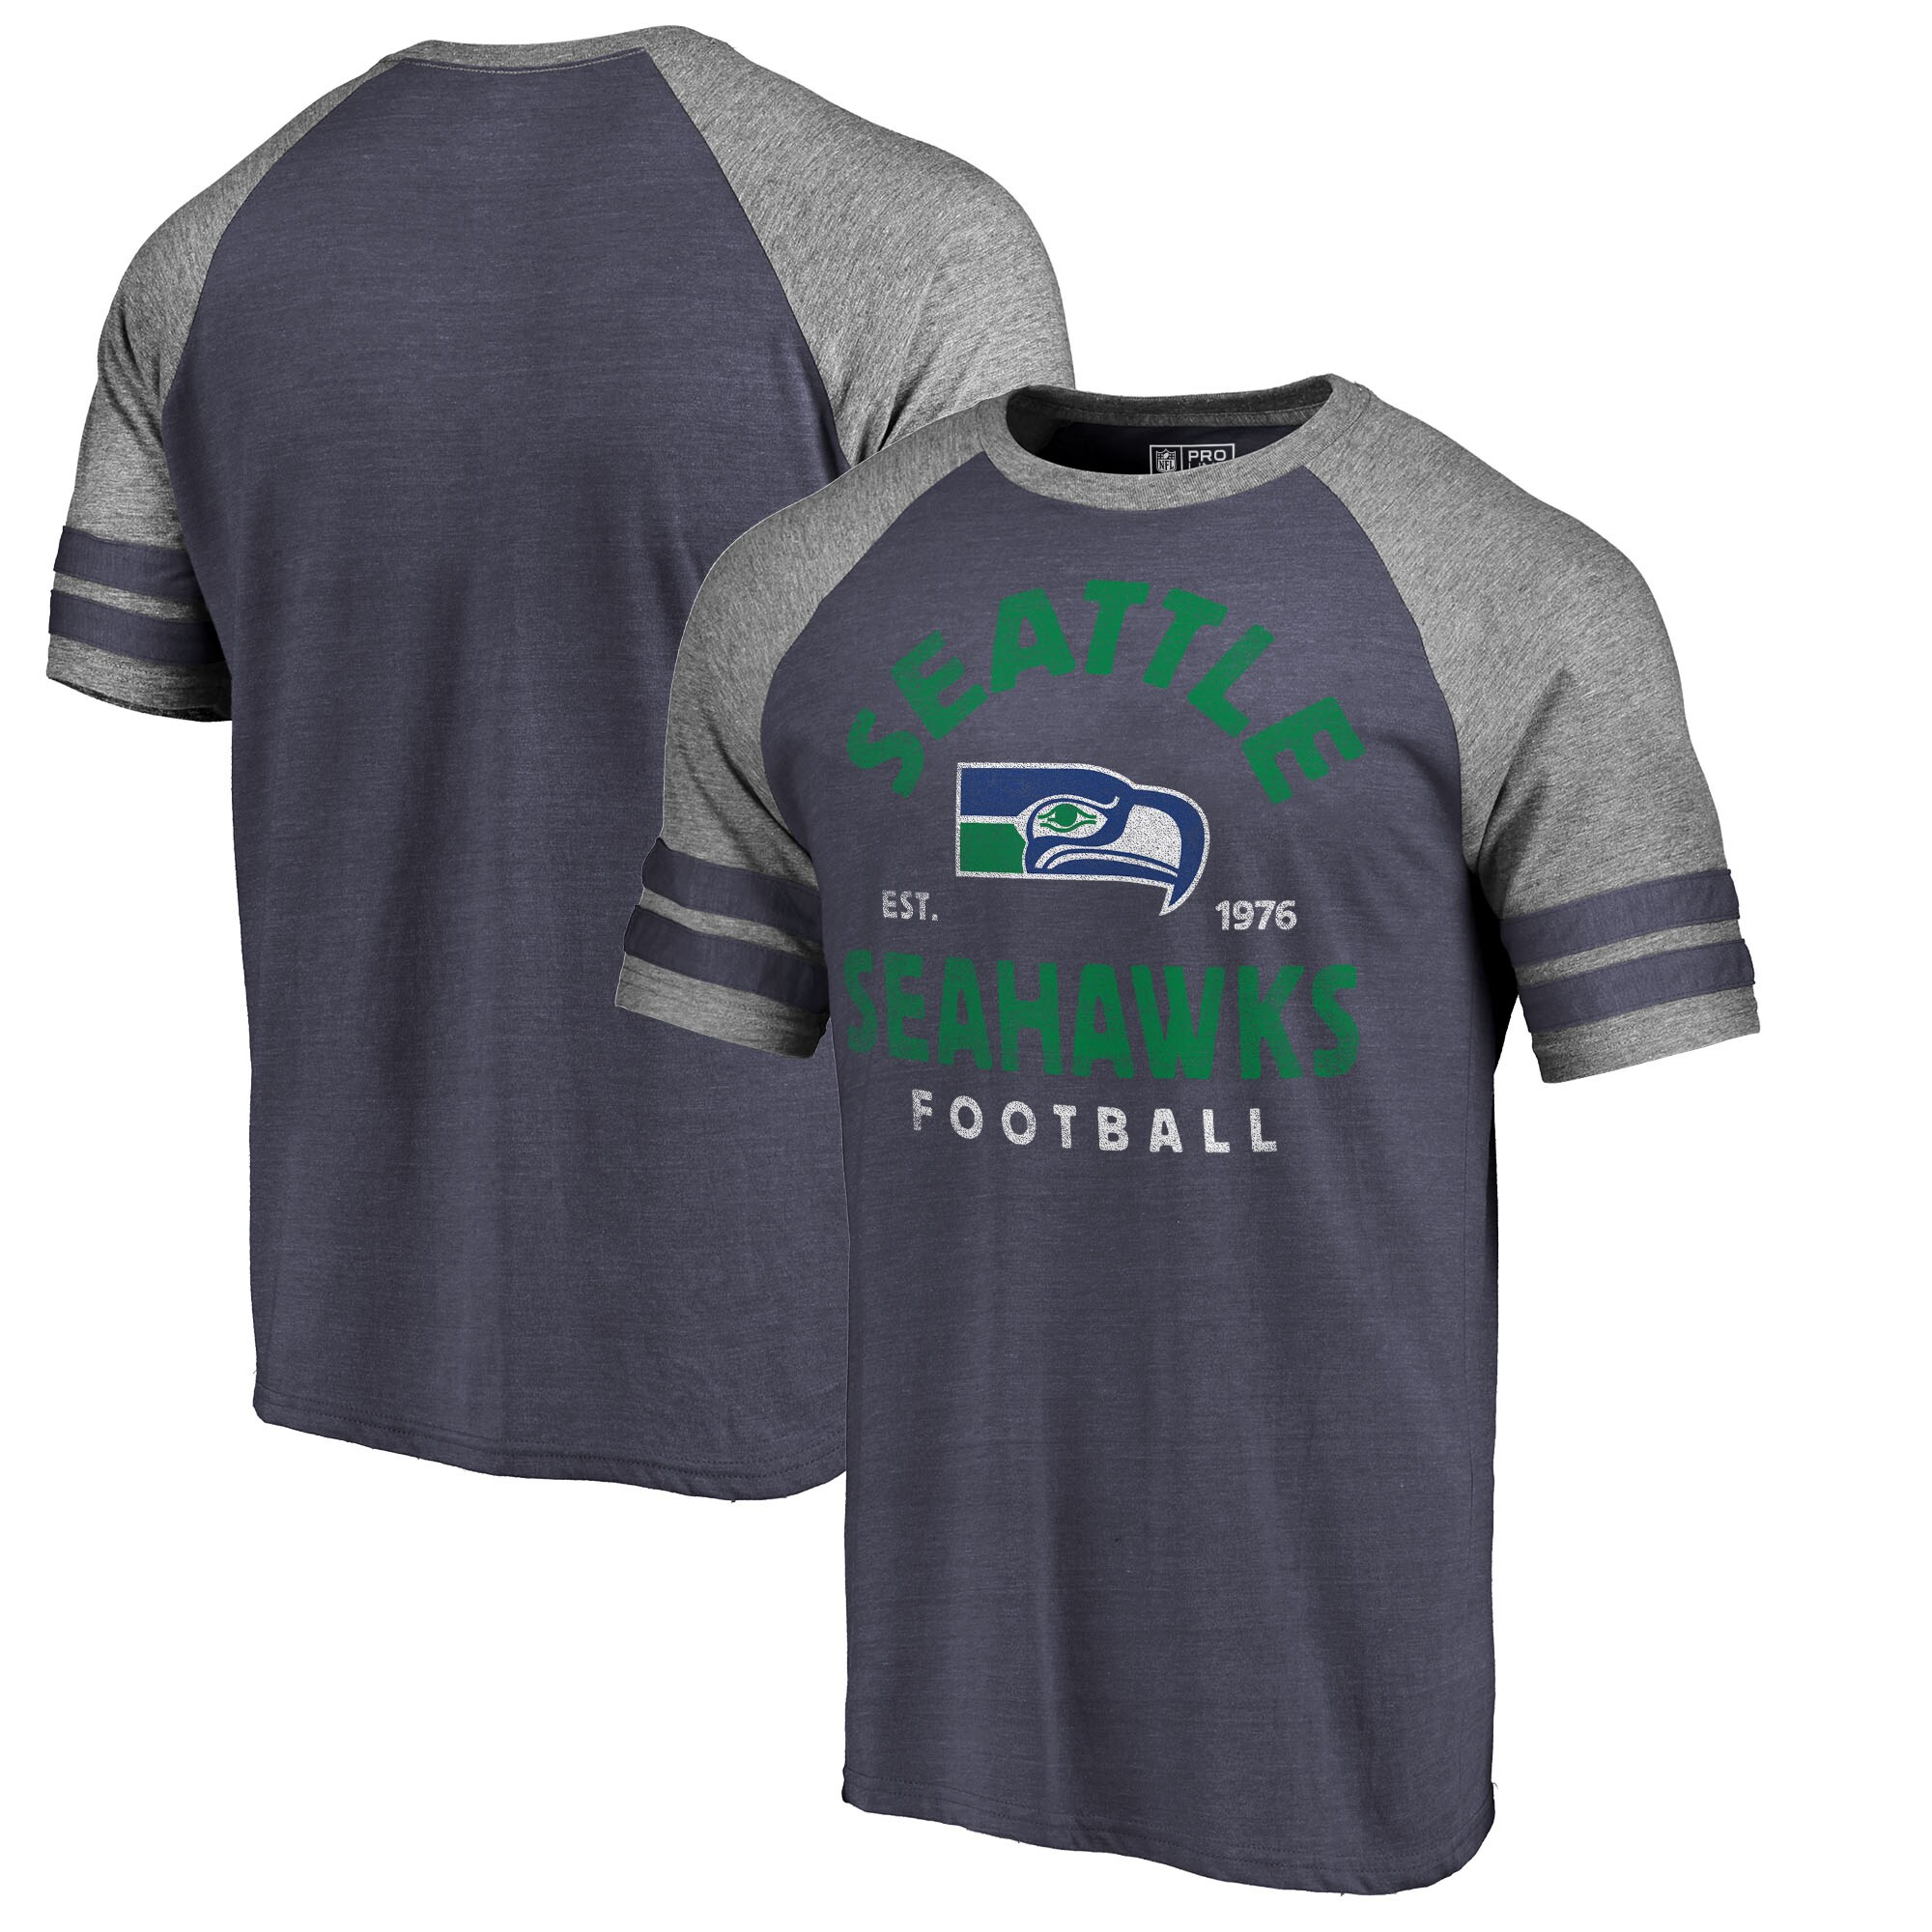 Seattle Seahawks NFL Pro Line by Fanatics Branded Timeless Collection Vintage Arch Tri-Blend Raglan T-Shirt - College Navy